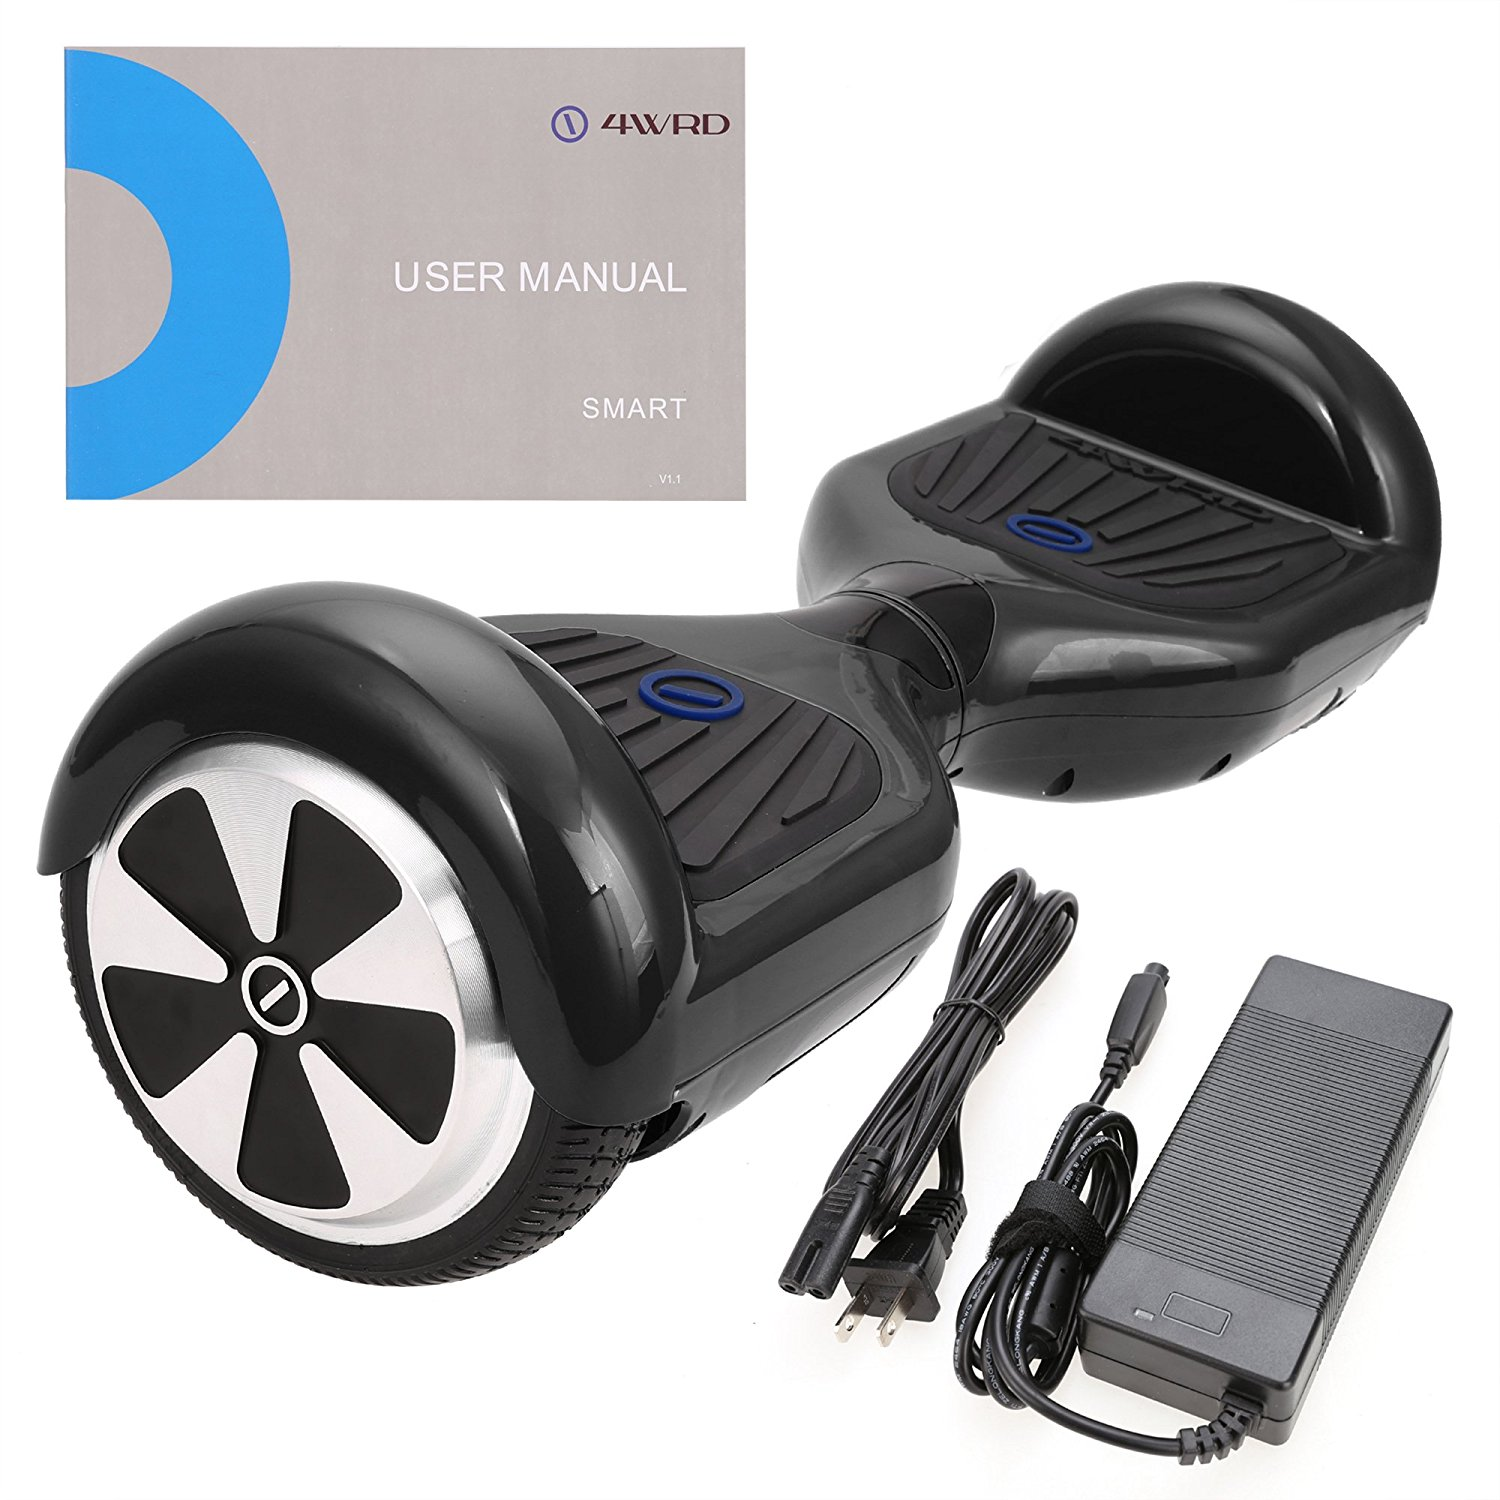 SURFUS Smart S - UL 2272 Certified Hoverboard - Electric Balance hoverboard (Black)